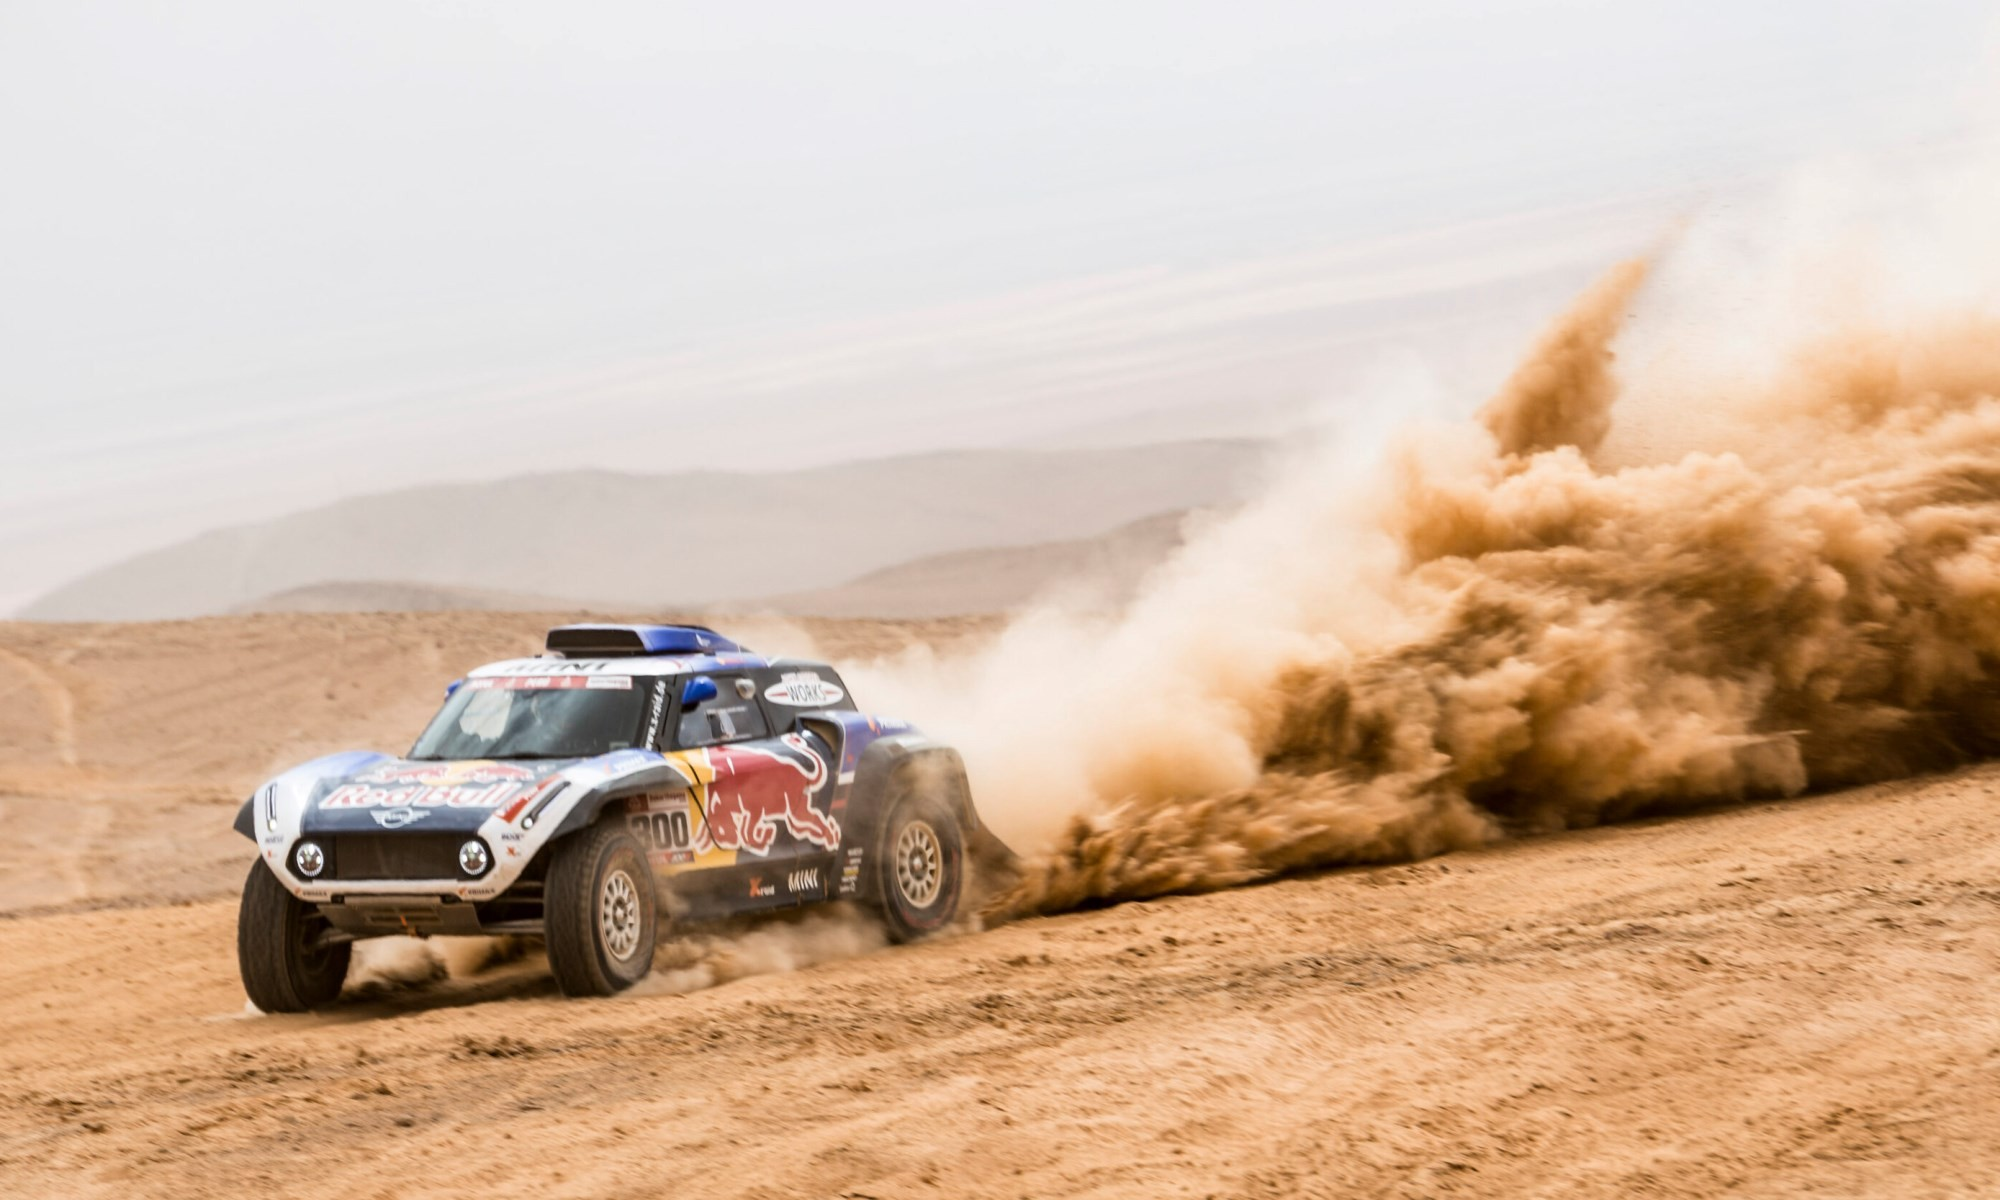 Carlos Sainz took the final stage win